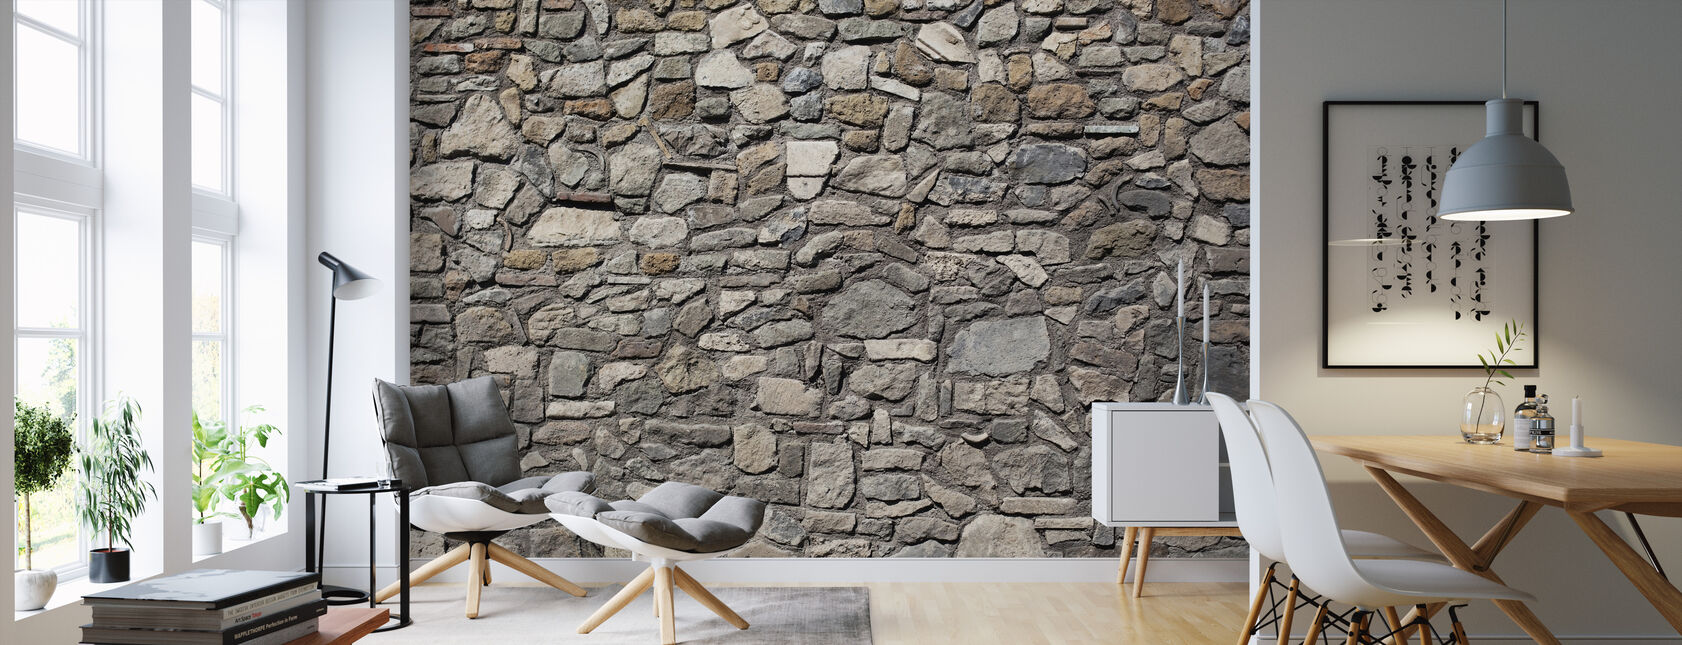 Old Stone Wall - Wallpaper - Living Room